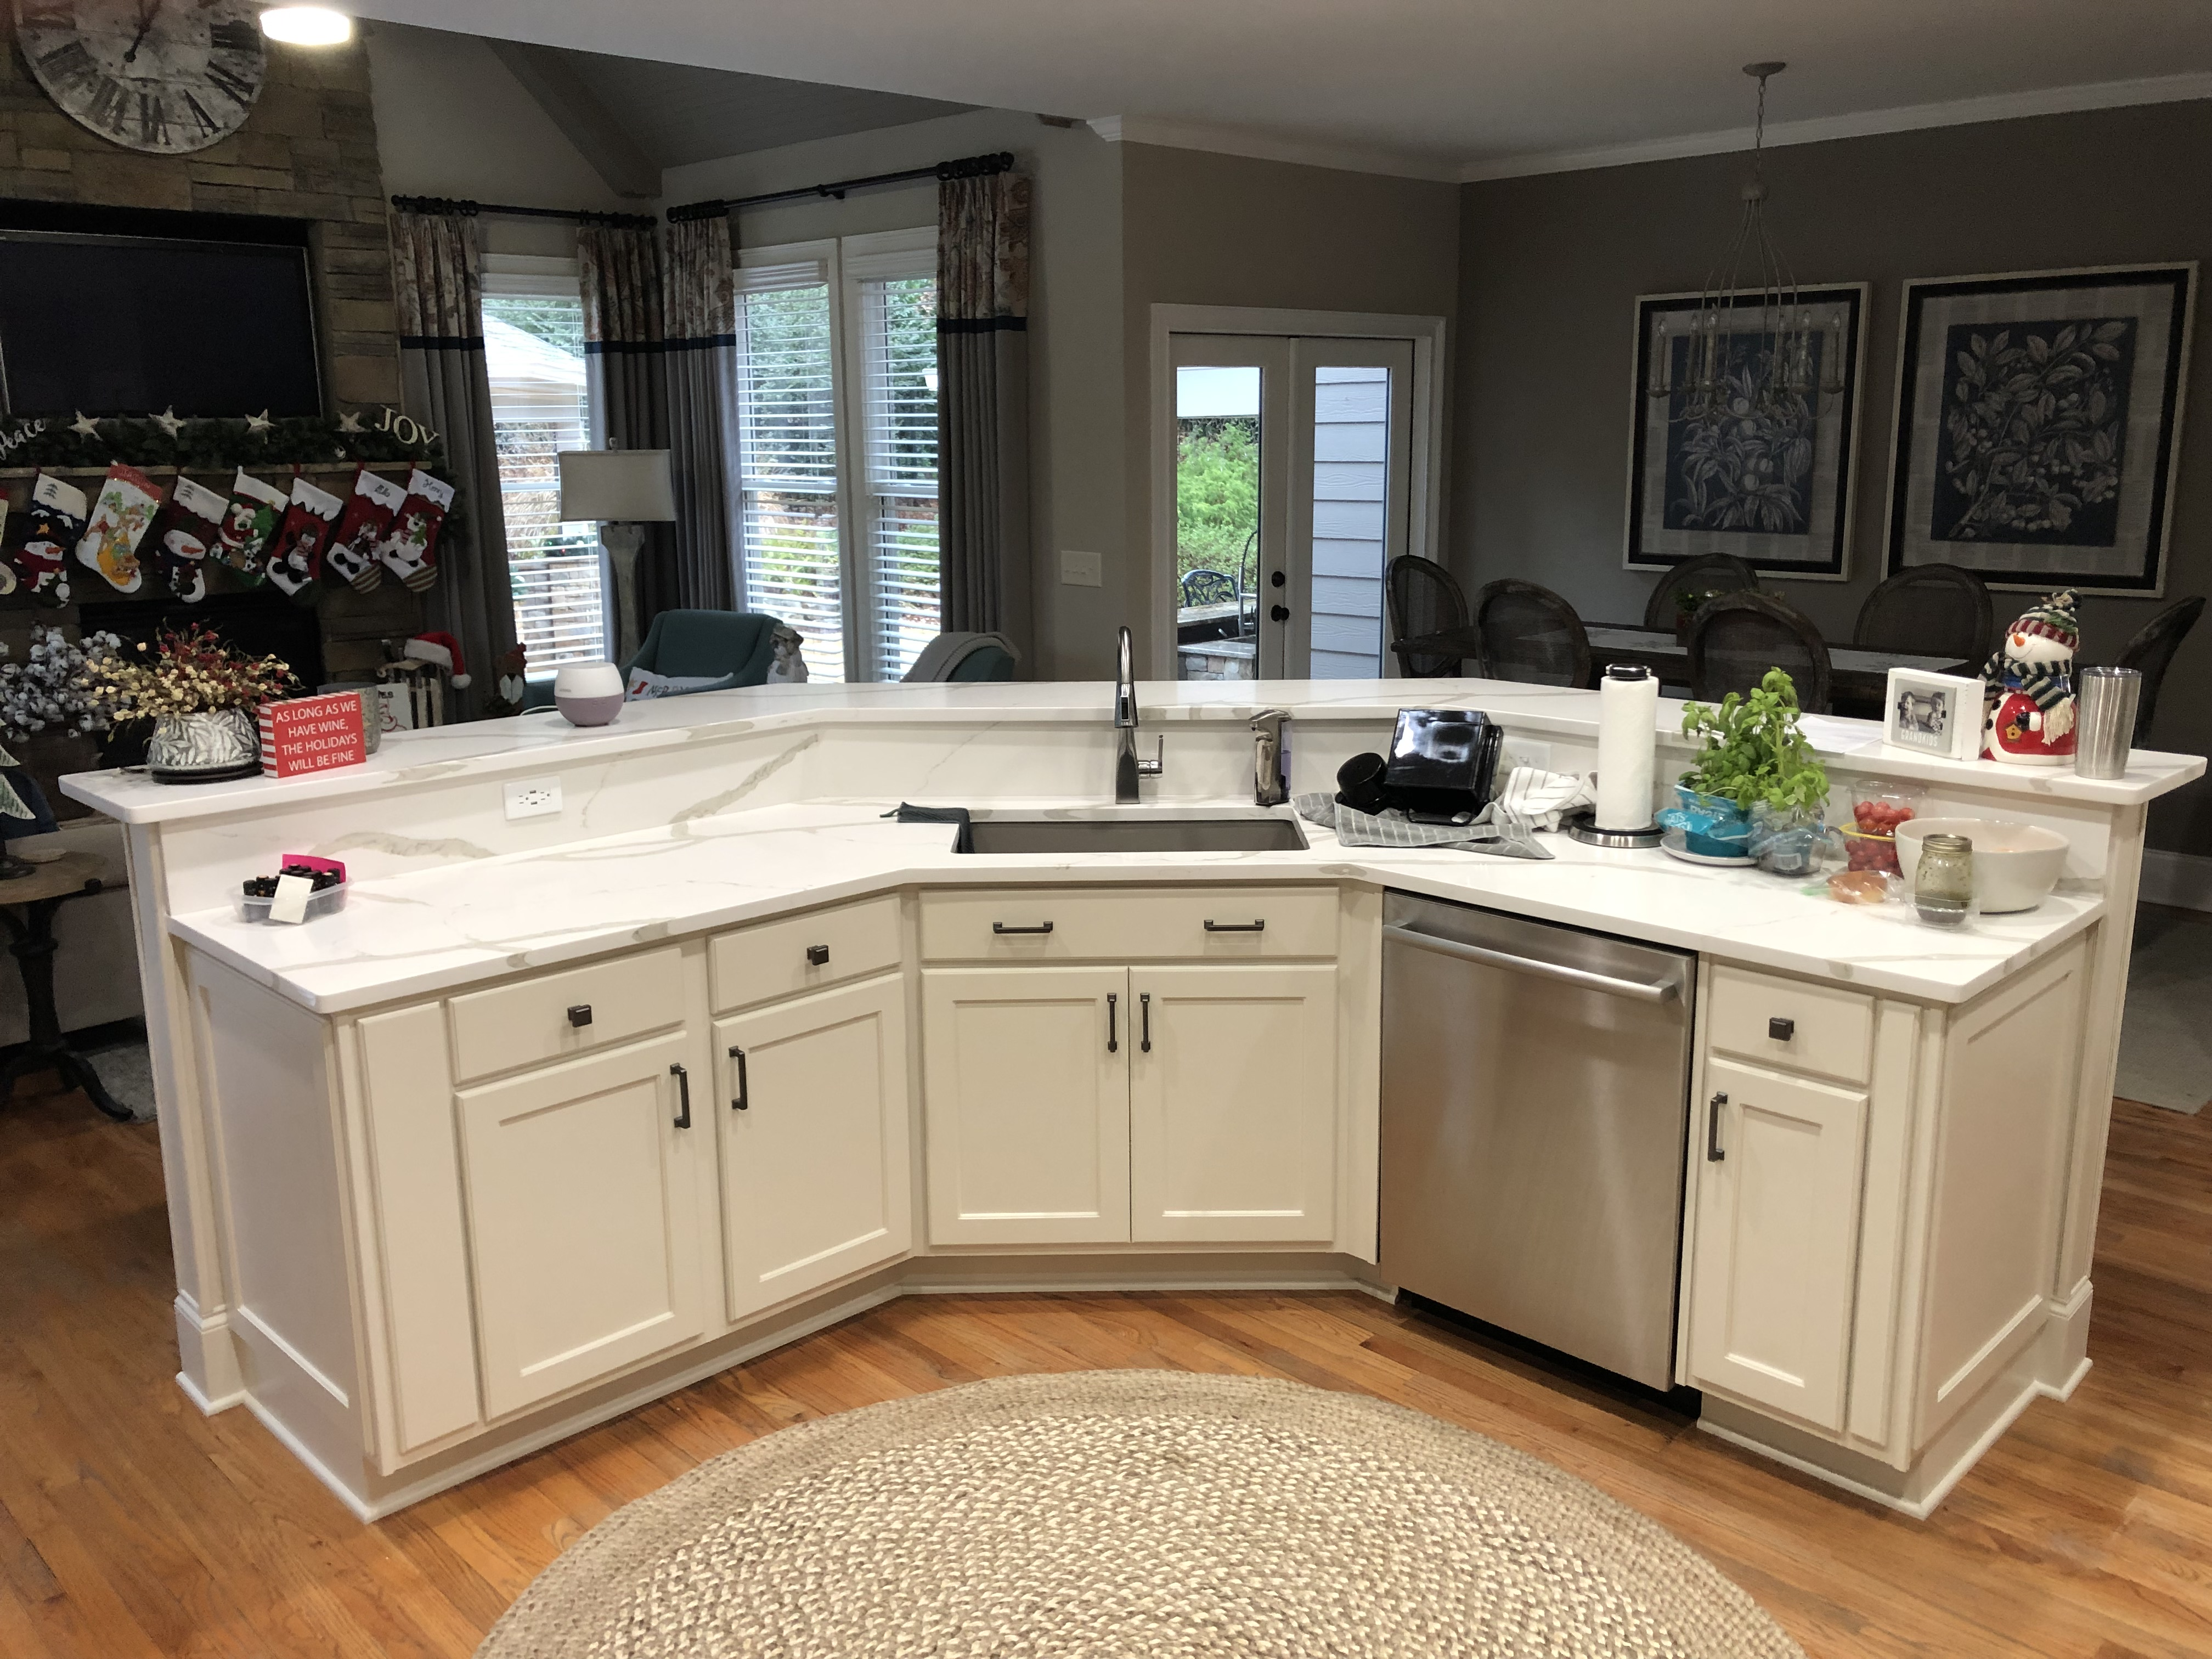 Kitchen Fronts of Georgia reviews | 3291 Laventure Dr - Chamblee GA